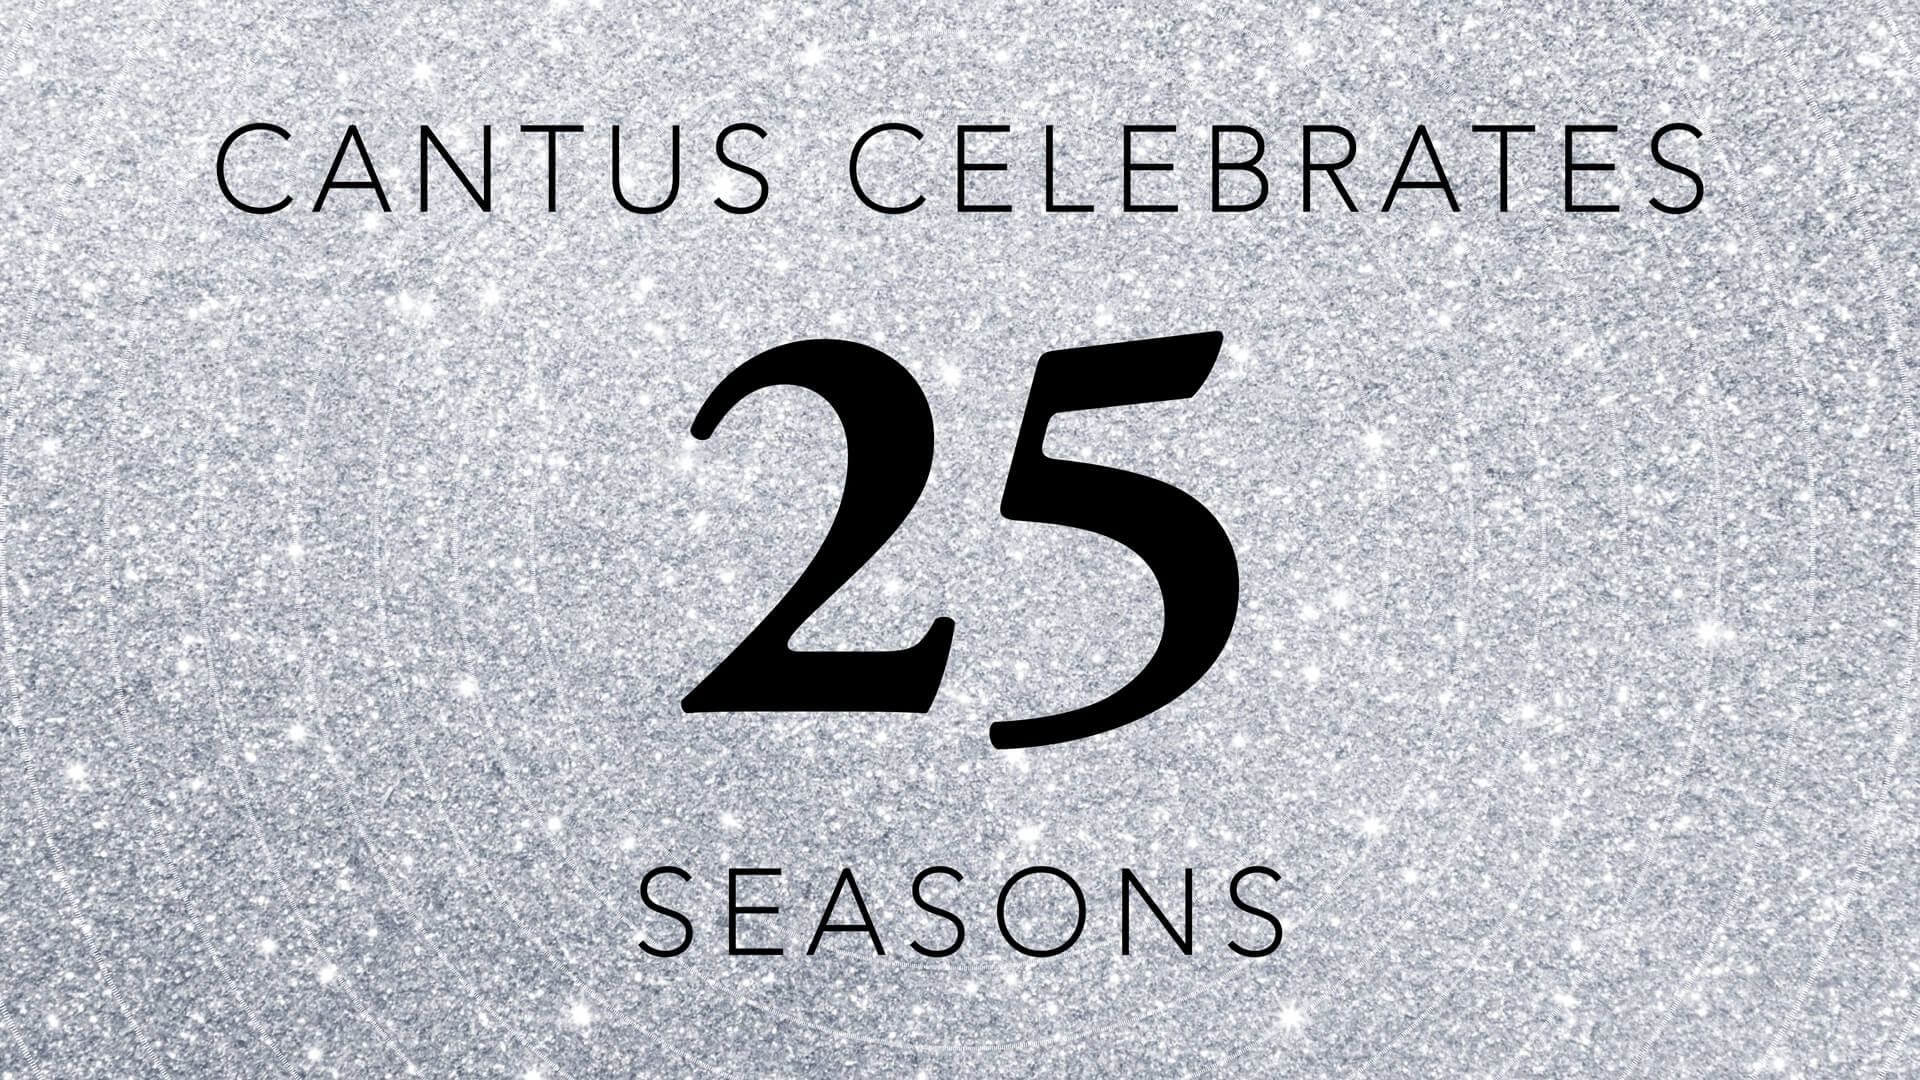 Glittery silver background with faint white circles that reads 'Cantus Celebrates 25 Seasons'